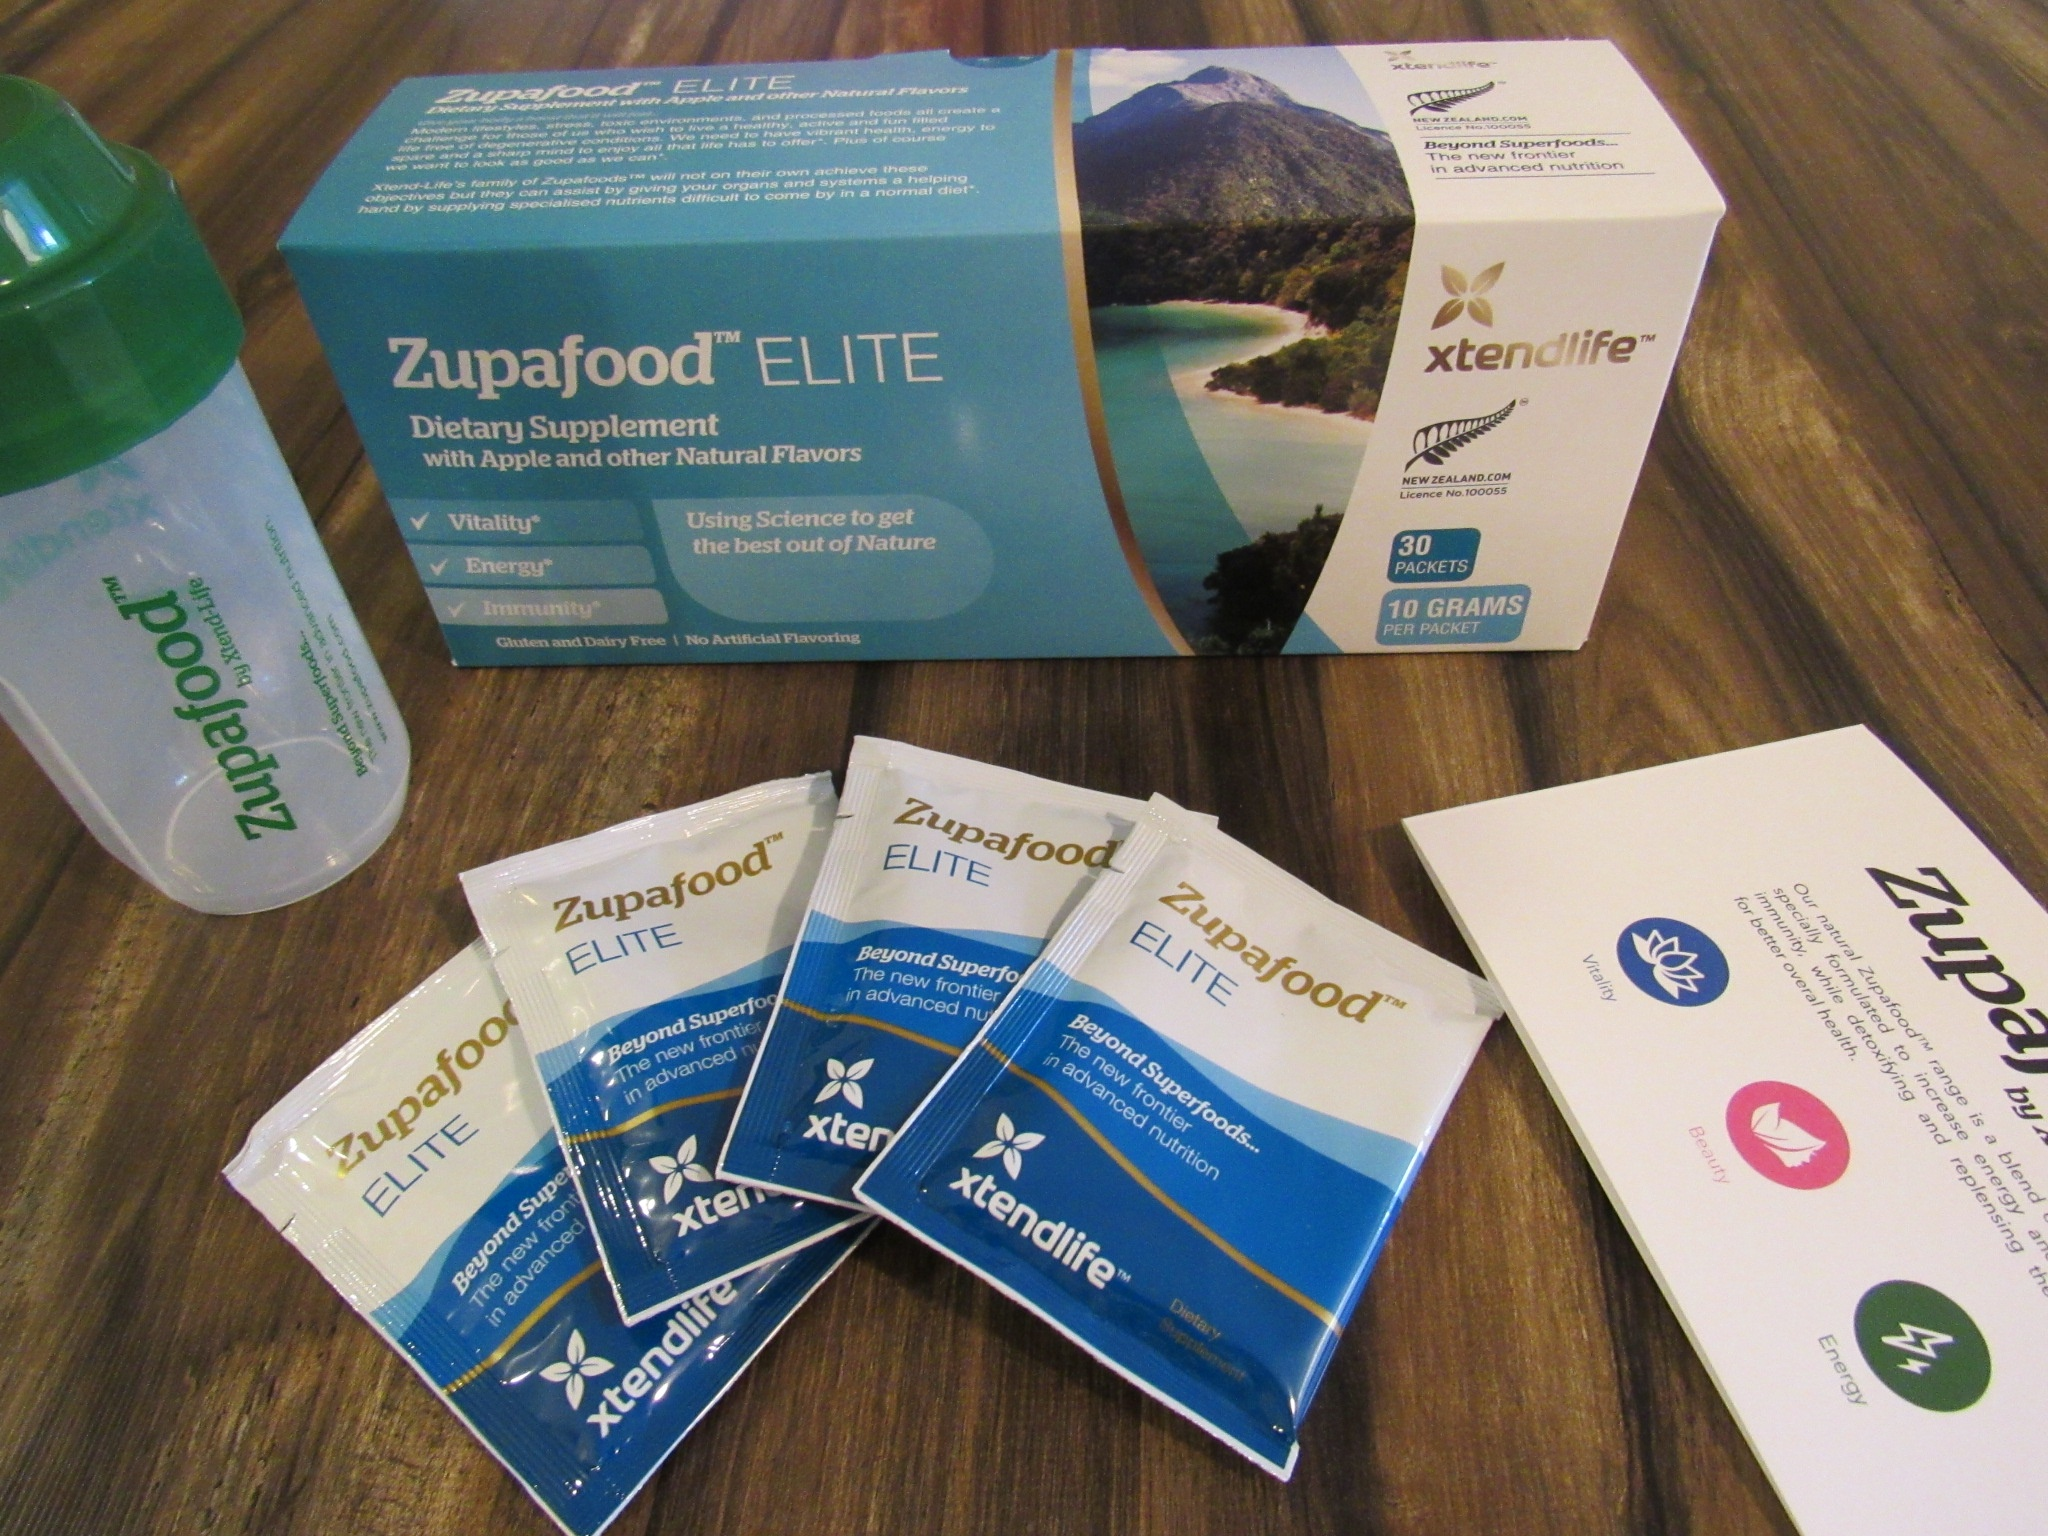 More Energy to Take on the World With Xtend-Life Zupafood™ ELITE #PromoCode #Savings #ad